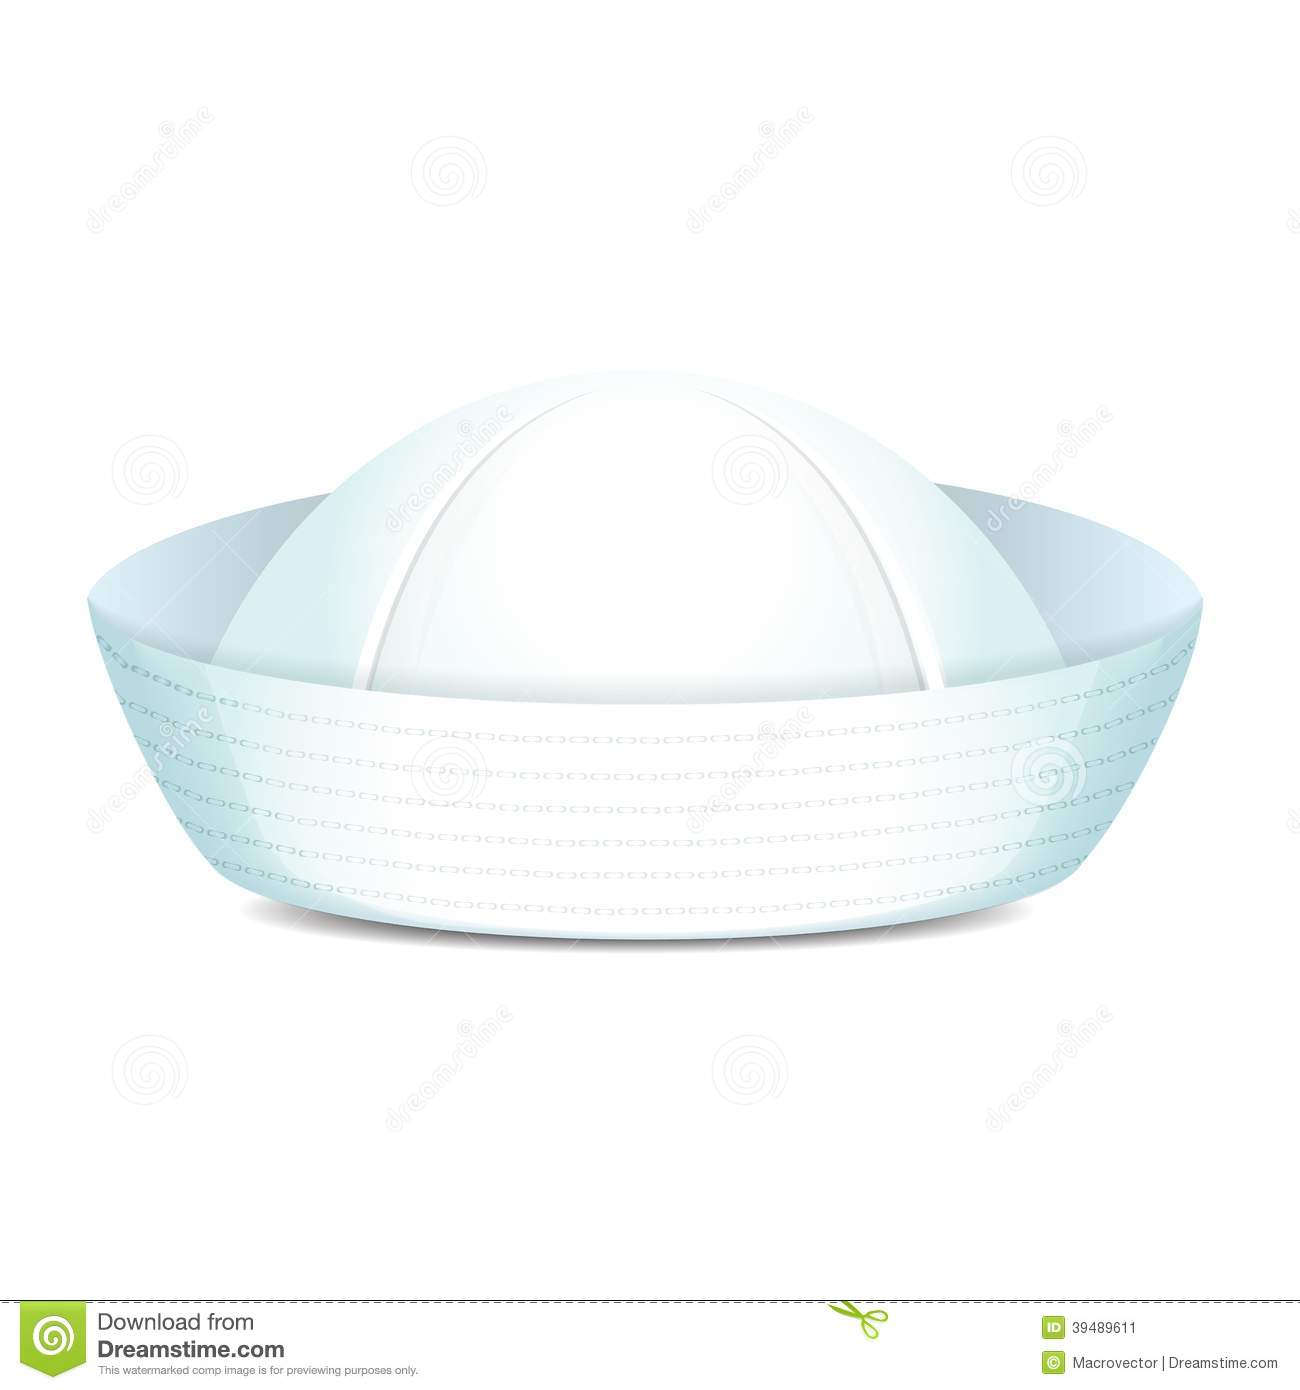 Peaked Sailor Hat Stock Vector - Image: 39489611 White Anchor Clip Art